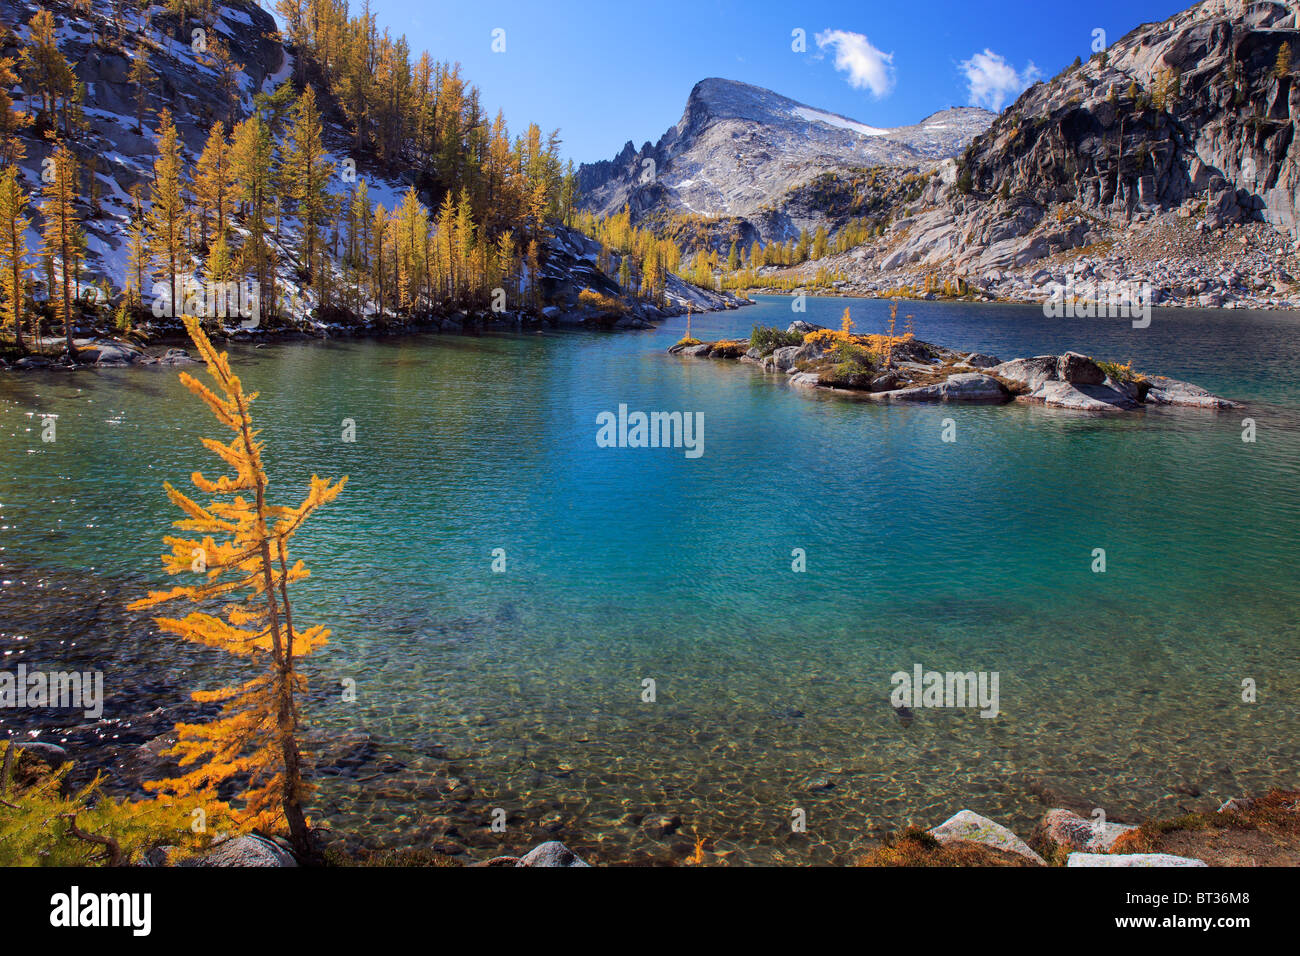 Larch trees at Perfection Lake in the Enchantment Lakes wilderness in Washington state, USA - Stock Image